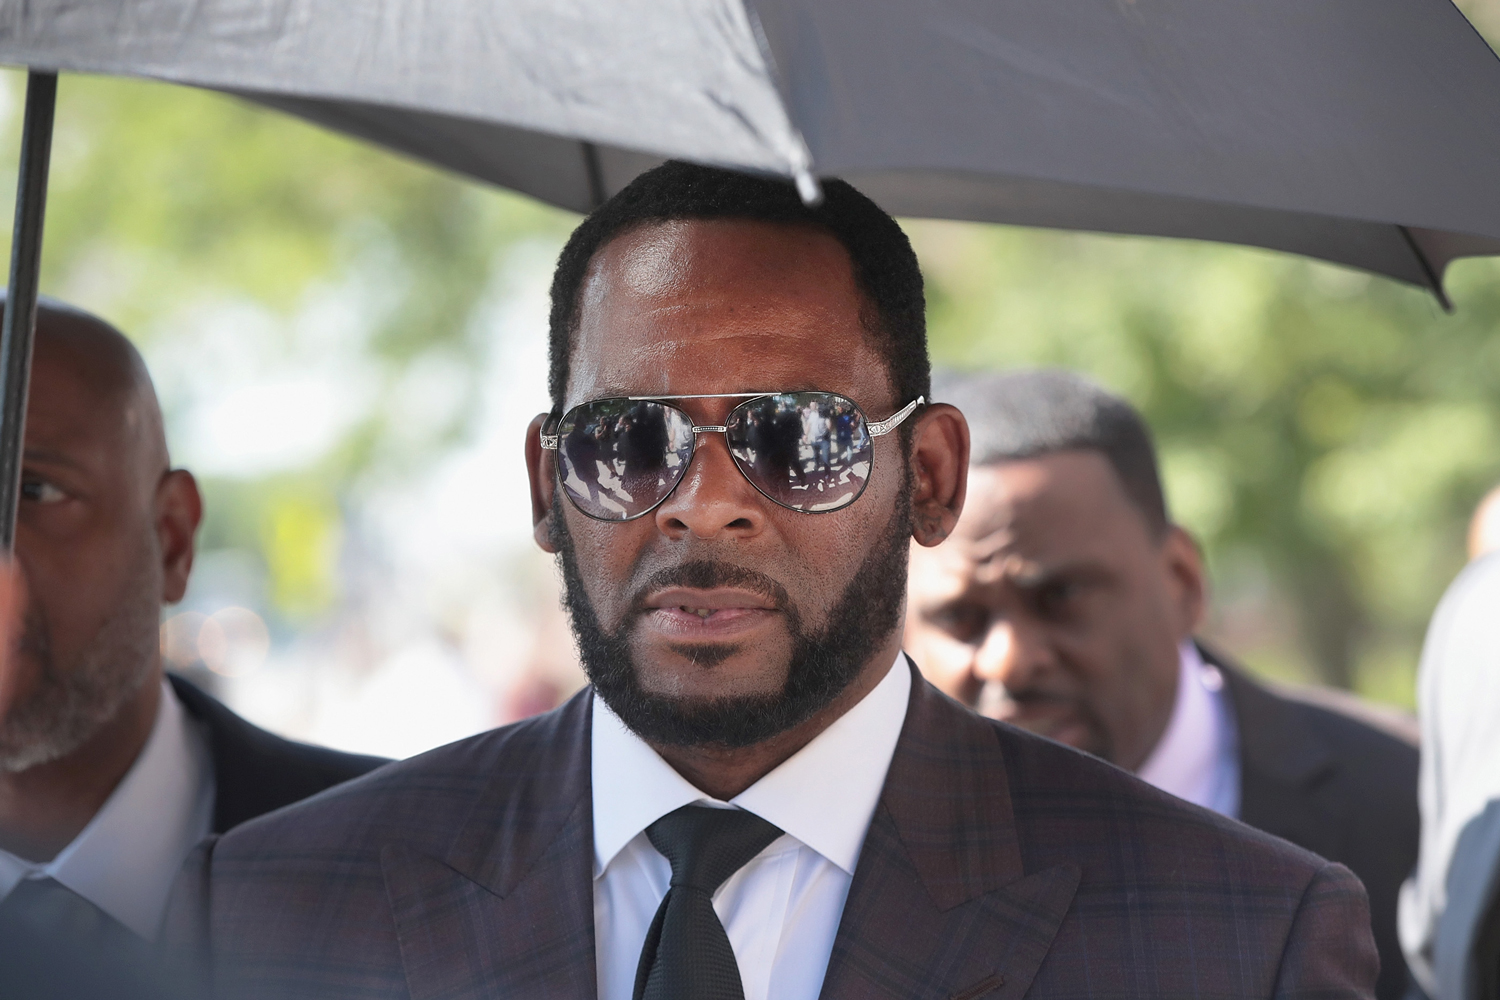 R. Kelly Pleads Not Guilty, Denied Bond on Federal Child Pornography Charges